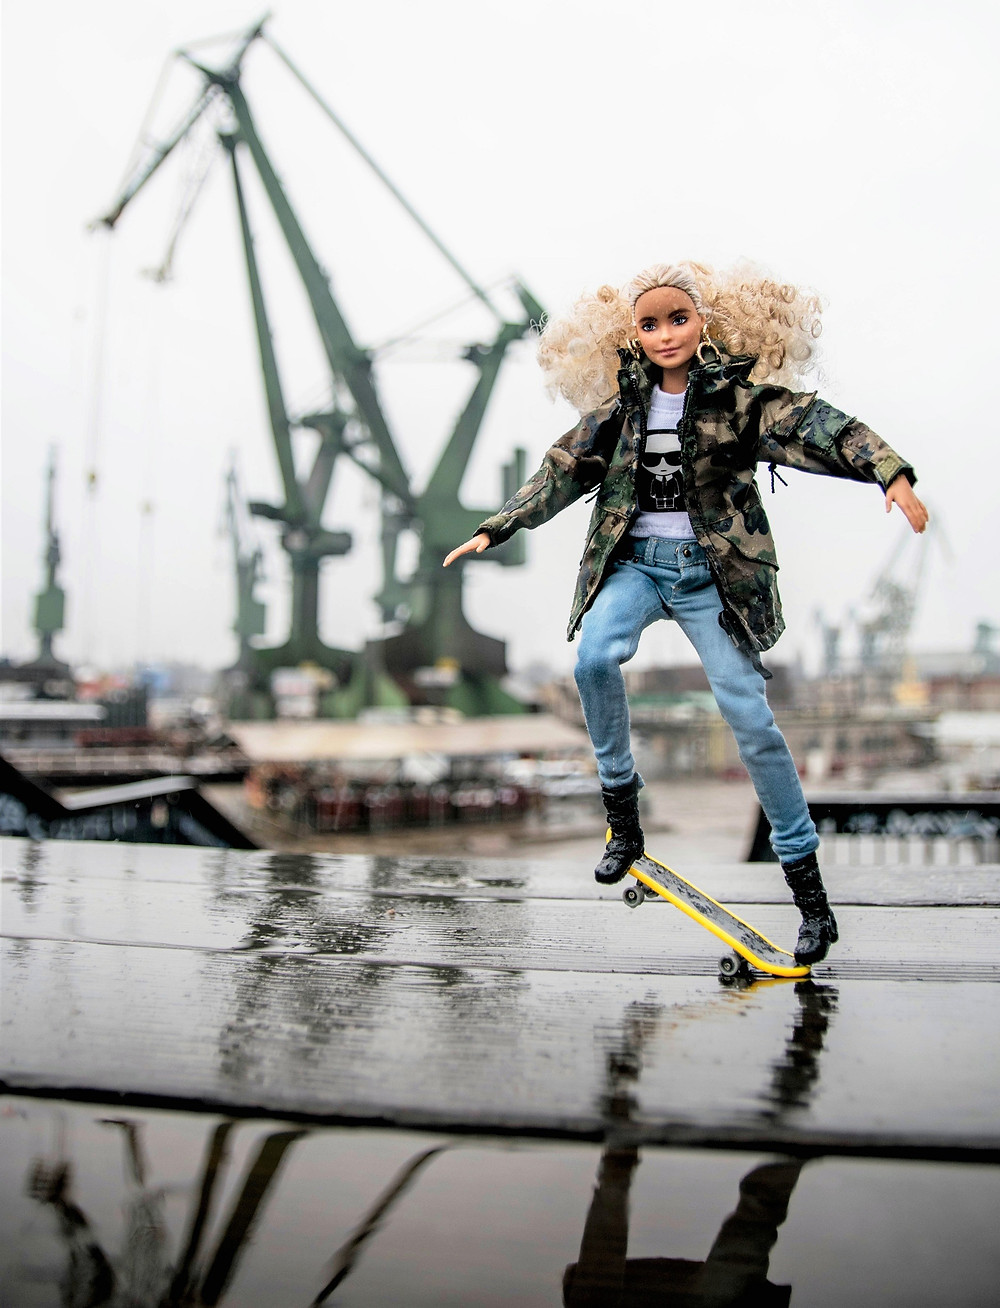 Traveling Doll Pants project for doll collectors around the world to showcase their collectable dolls, doll fashion and accessories